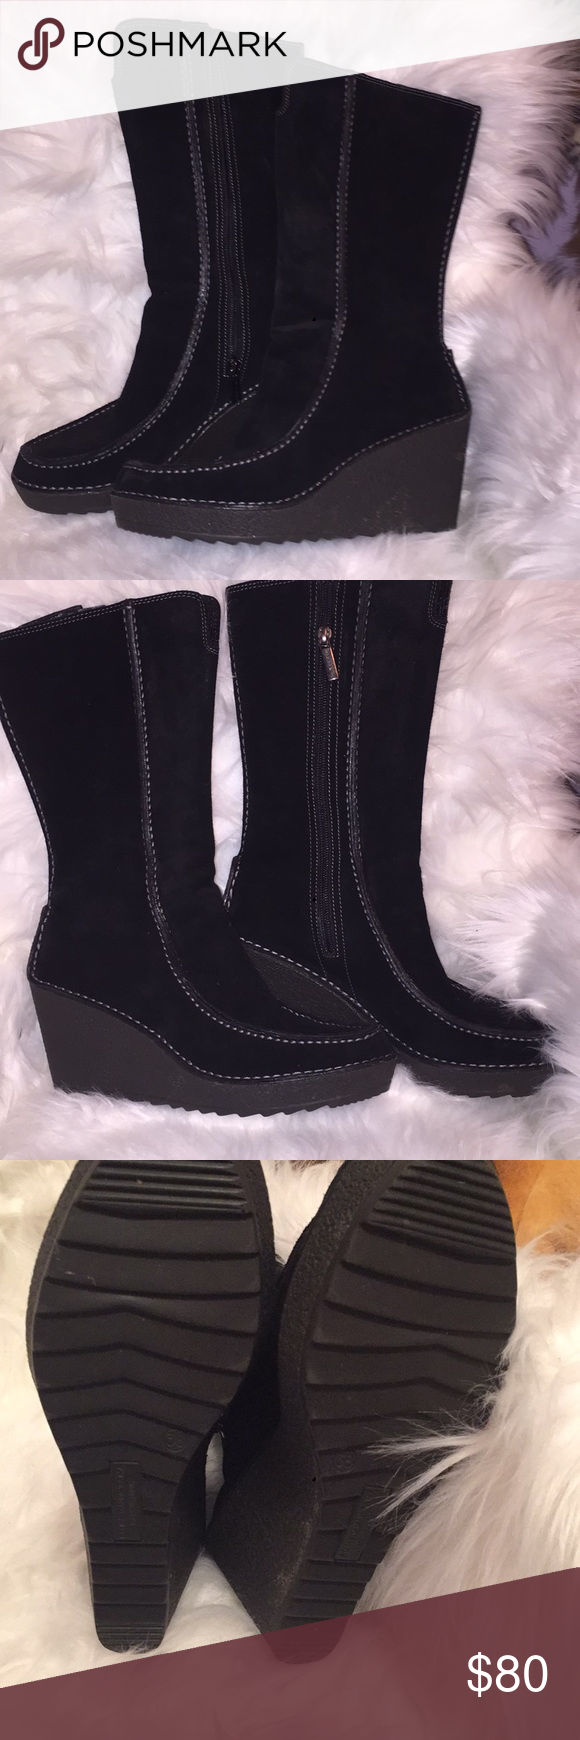 94acba78574 Pons Quintana star boot tall 38 Black Pons Quintana wedge boots with  leather exterior and suede exterior. These gorgeous boots are in pristine  condition.